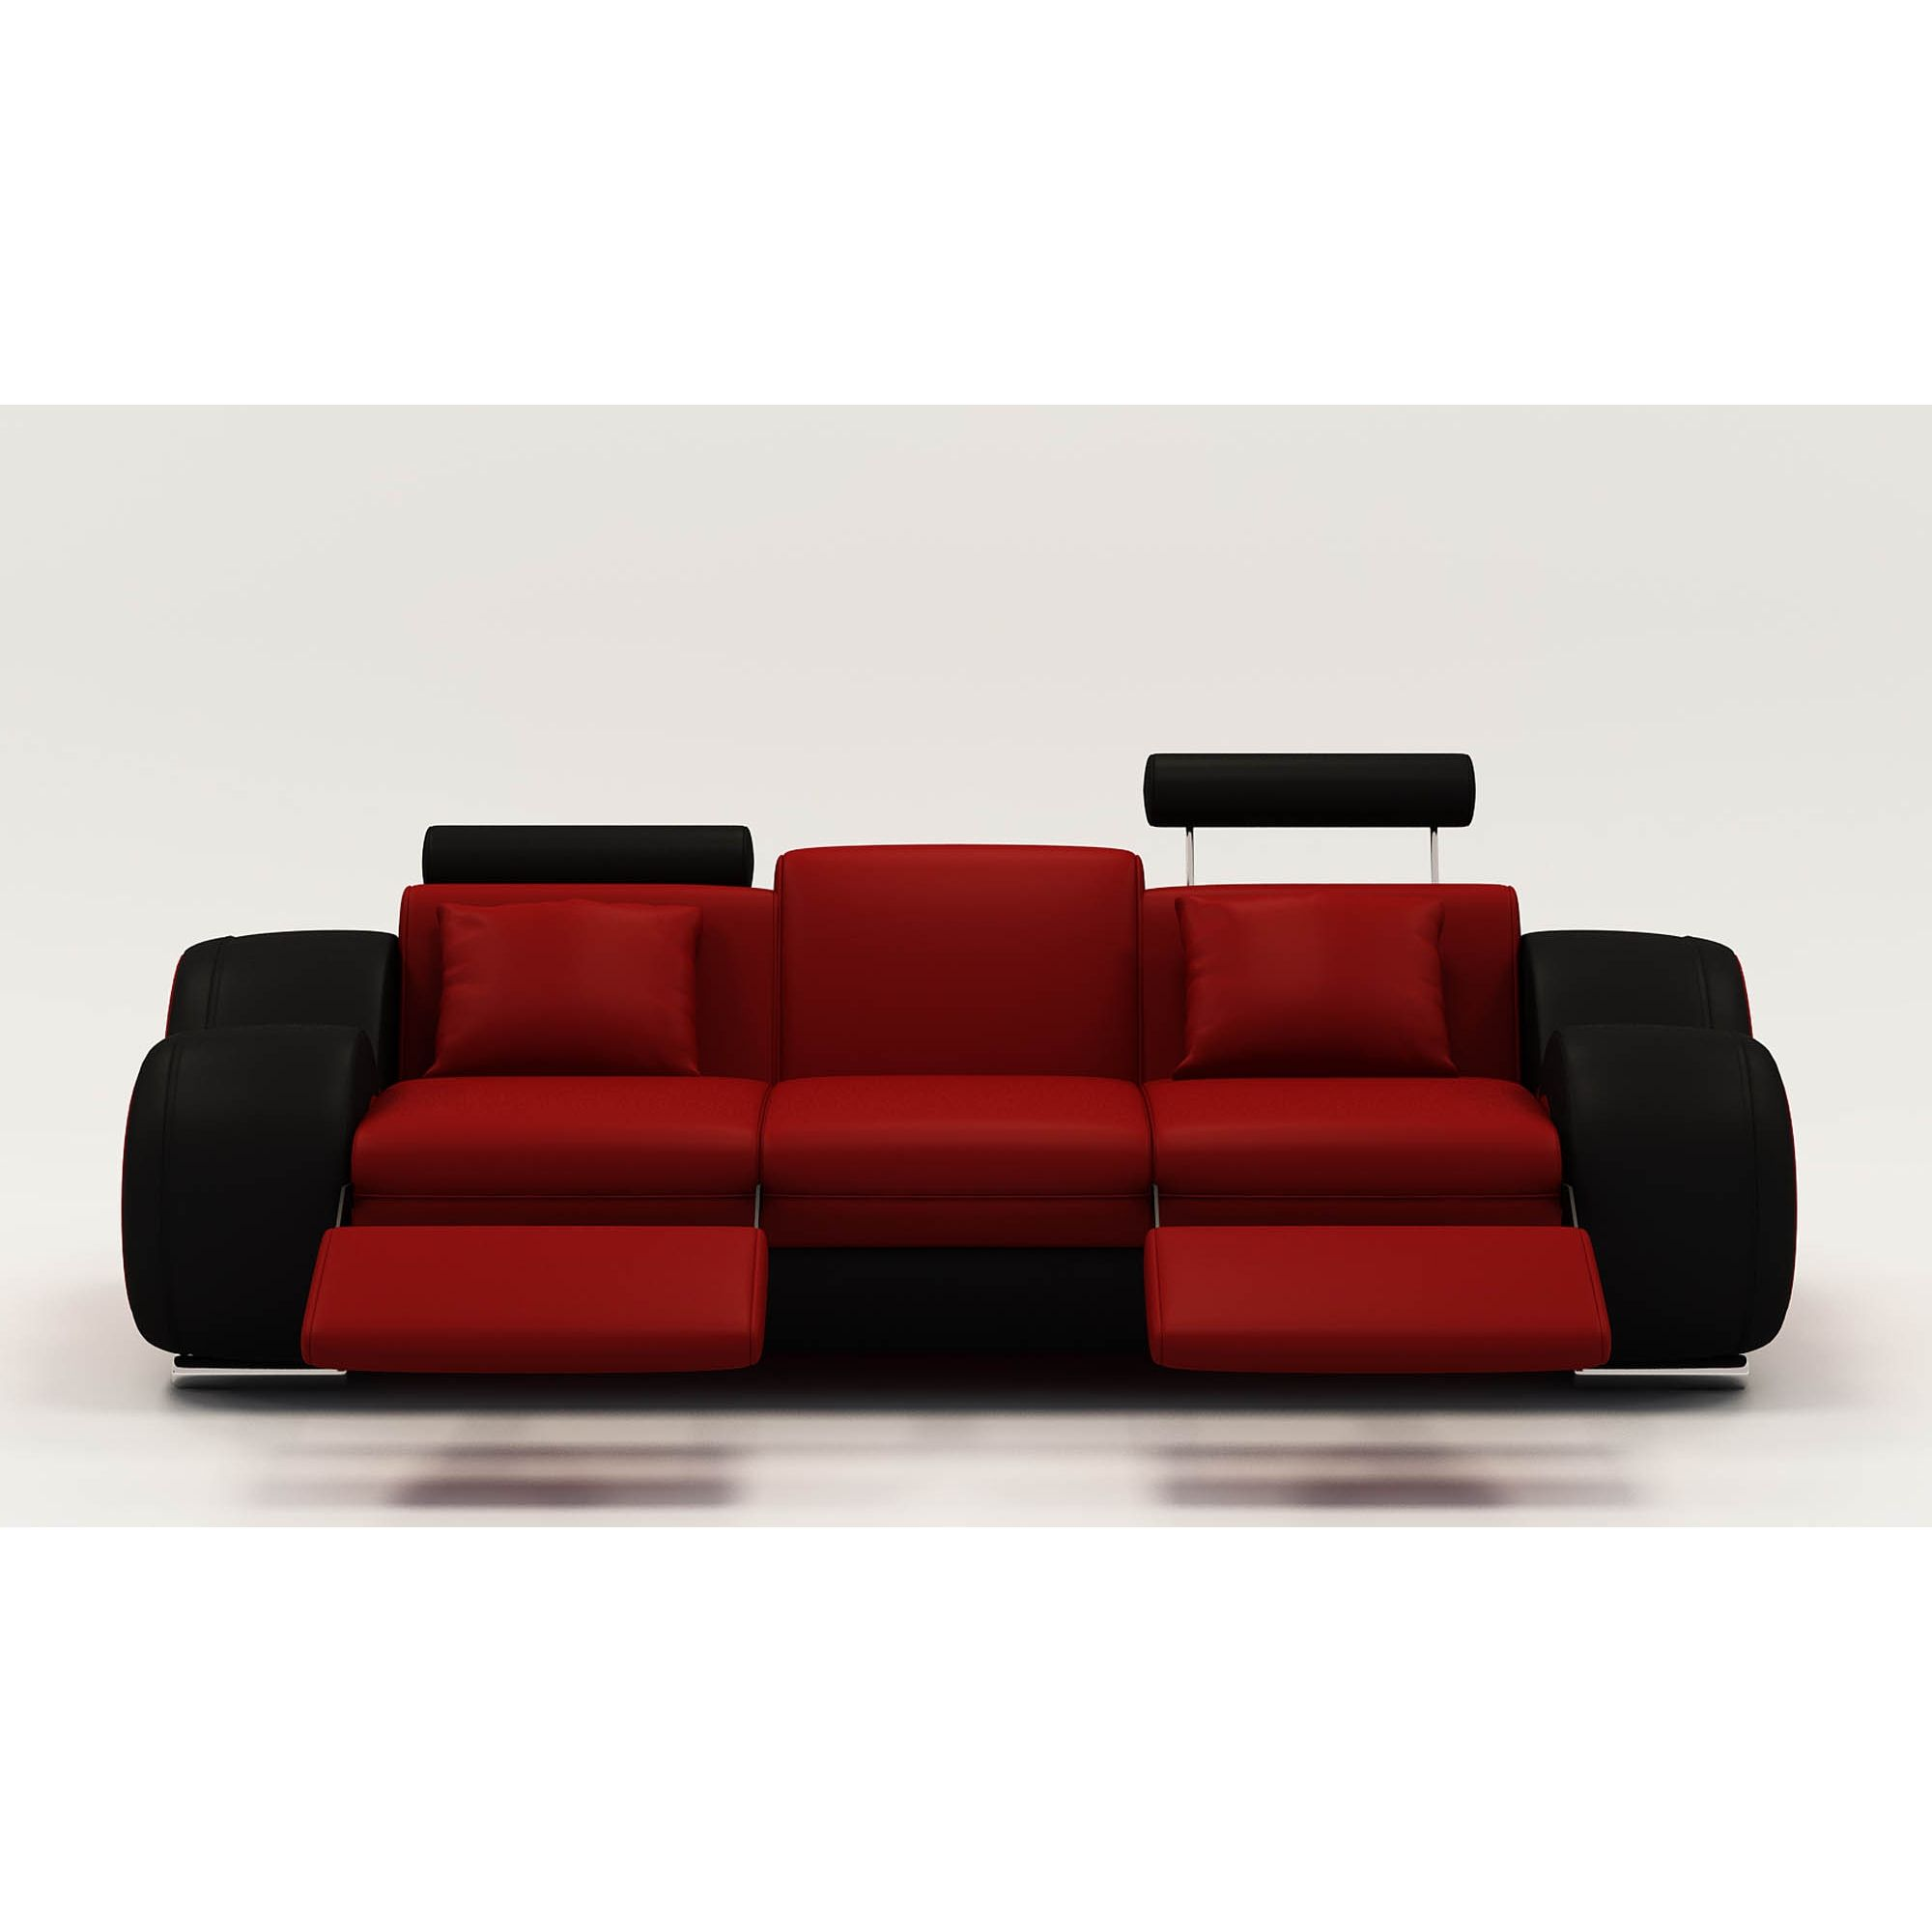 Deco in paris 7 canape design 3 places cuir rouge et - Canape design 3 places ...